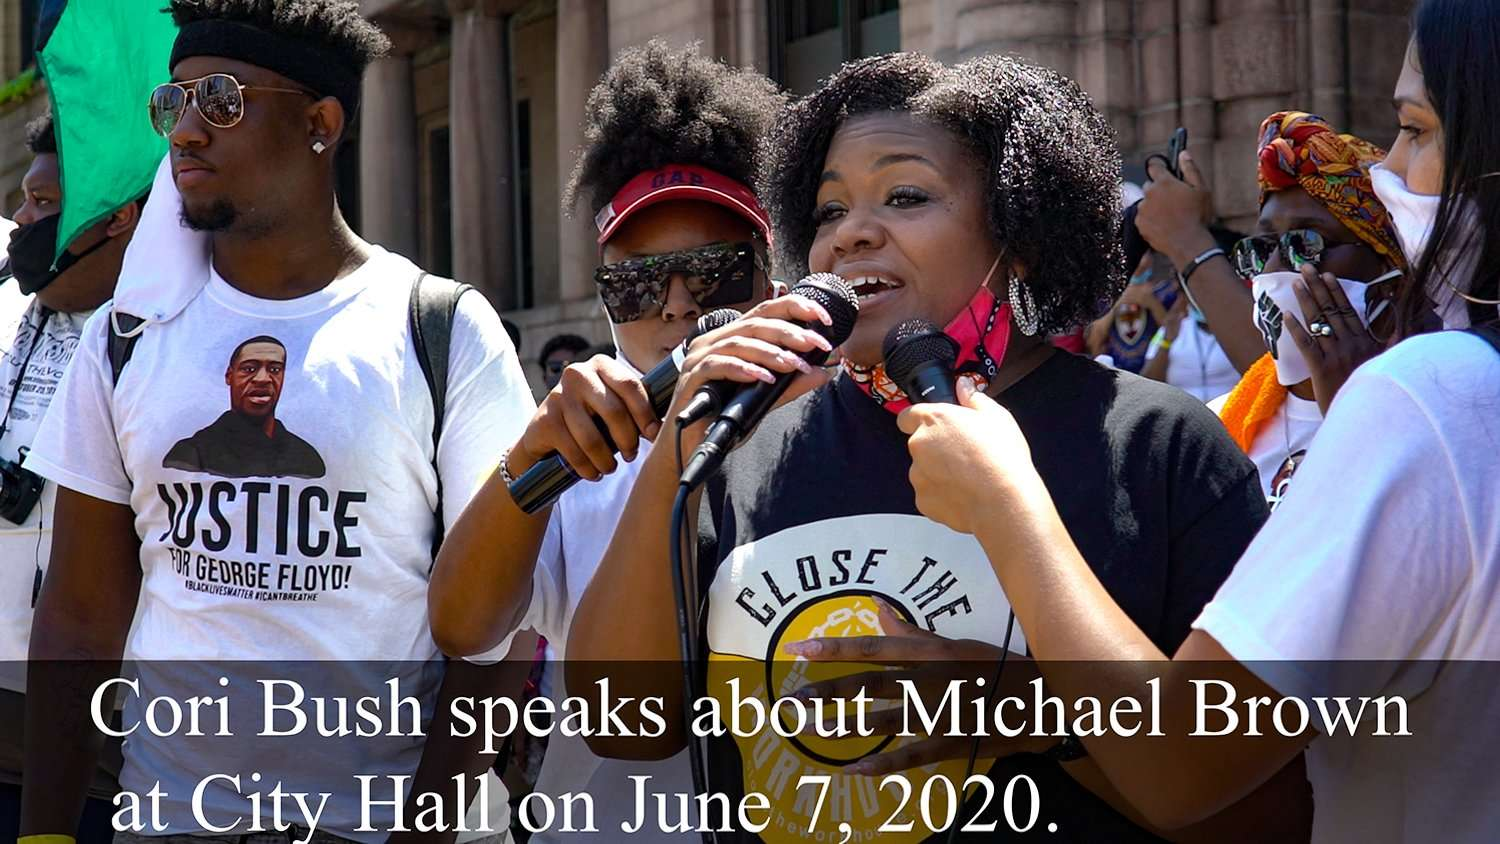 Cori Bush speaks about Michael Brown